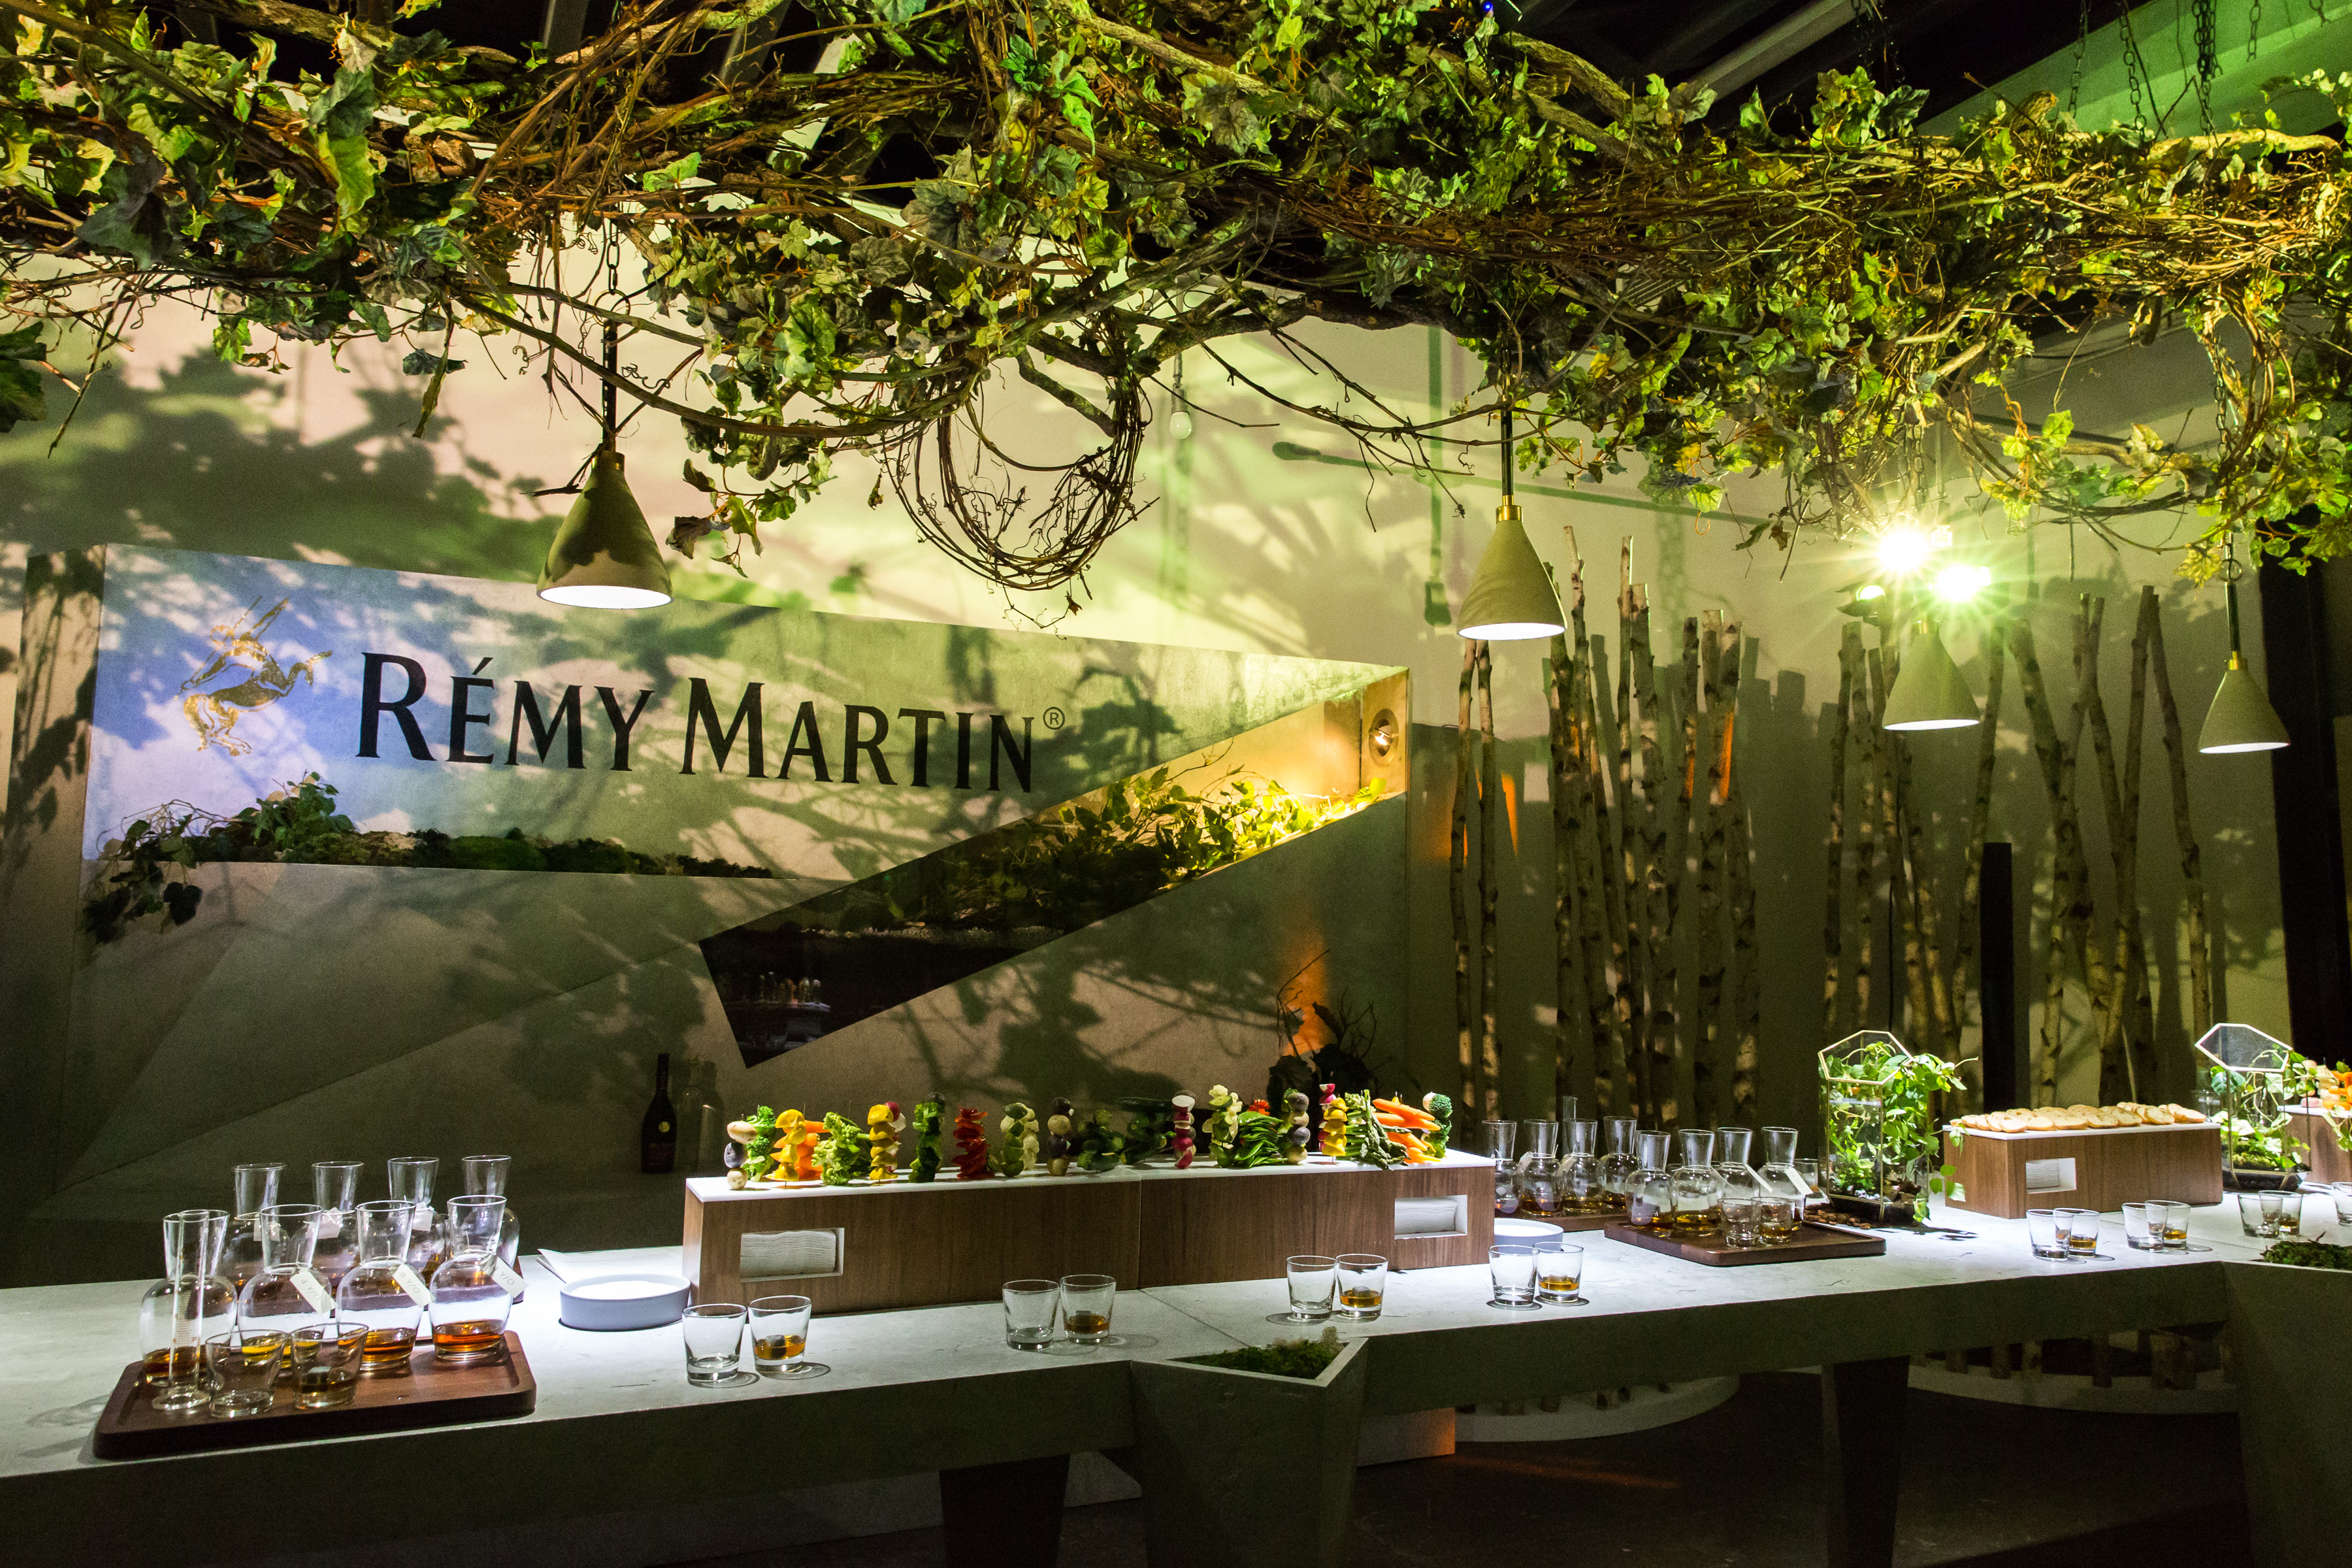 La Maison Rémy Martin : preview in New York City